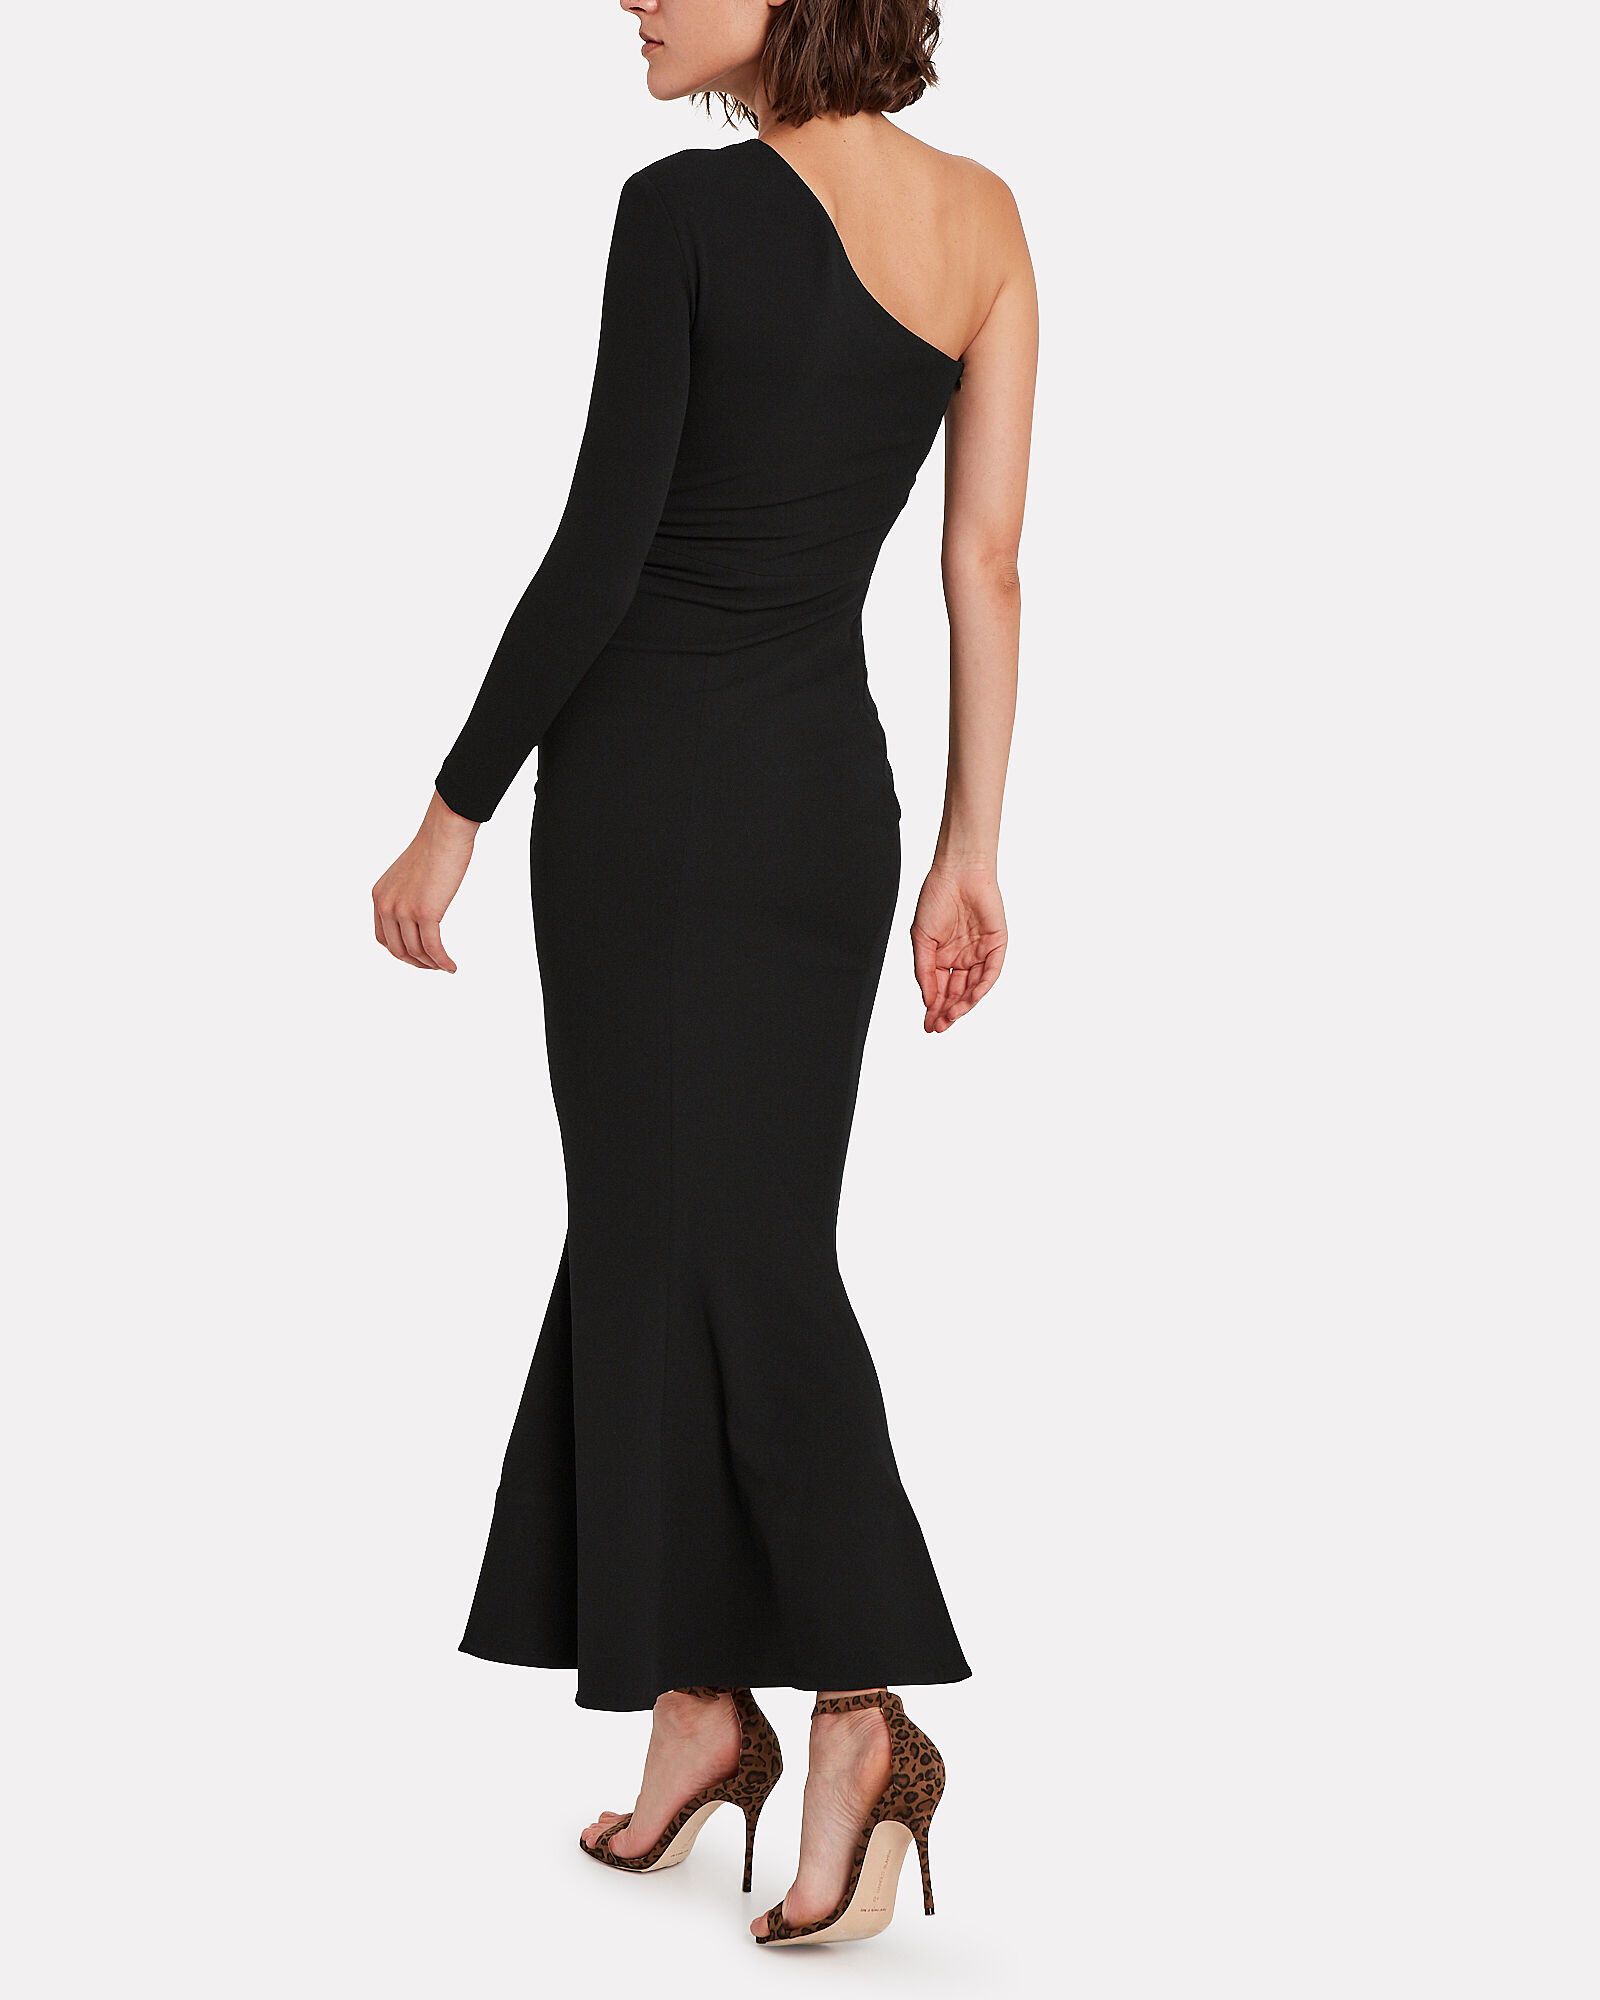 Sala Flared One-Shoulder Dress, BLACK, hi-res